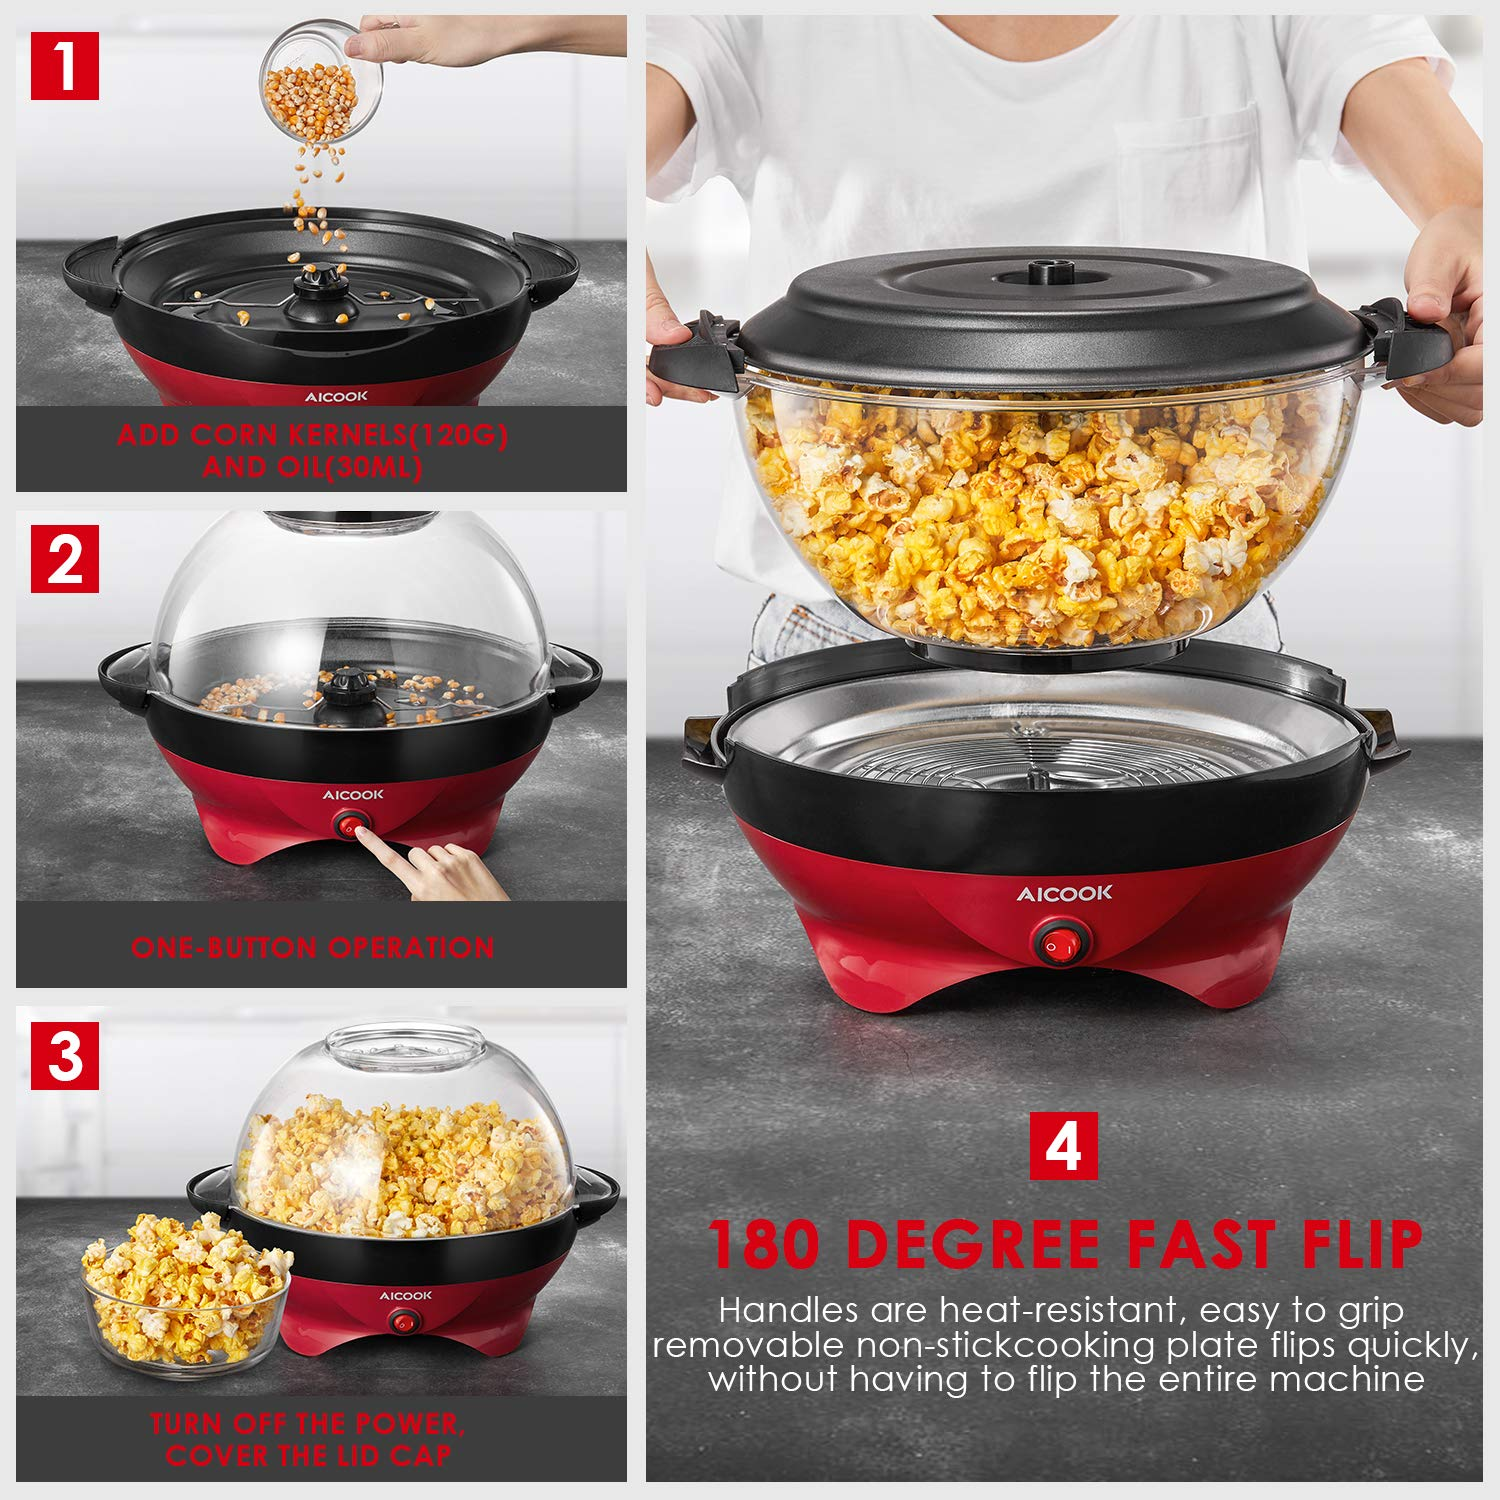 Amazon.com: Popcorn Maker, AICOOK Electric Hot Oil Popcorn Popper Machine with Stirring Rod Offers Large Lid for Serving Bowl and Convenient Storage, ...